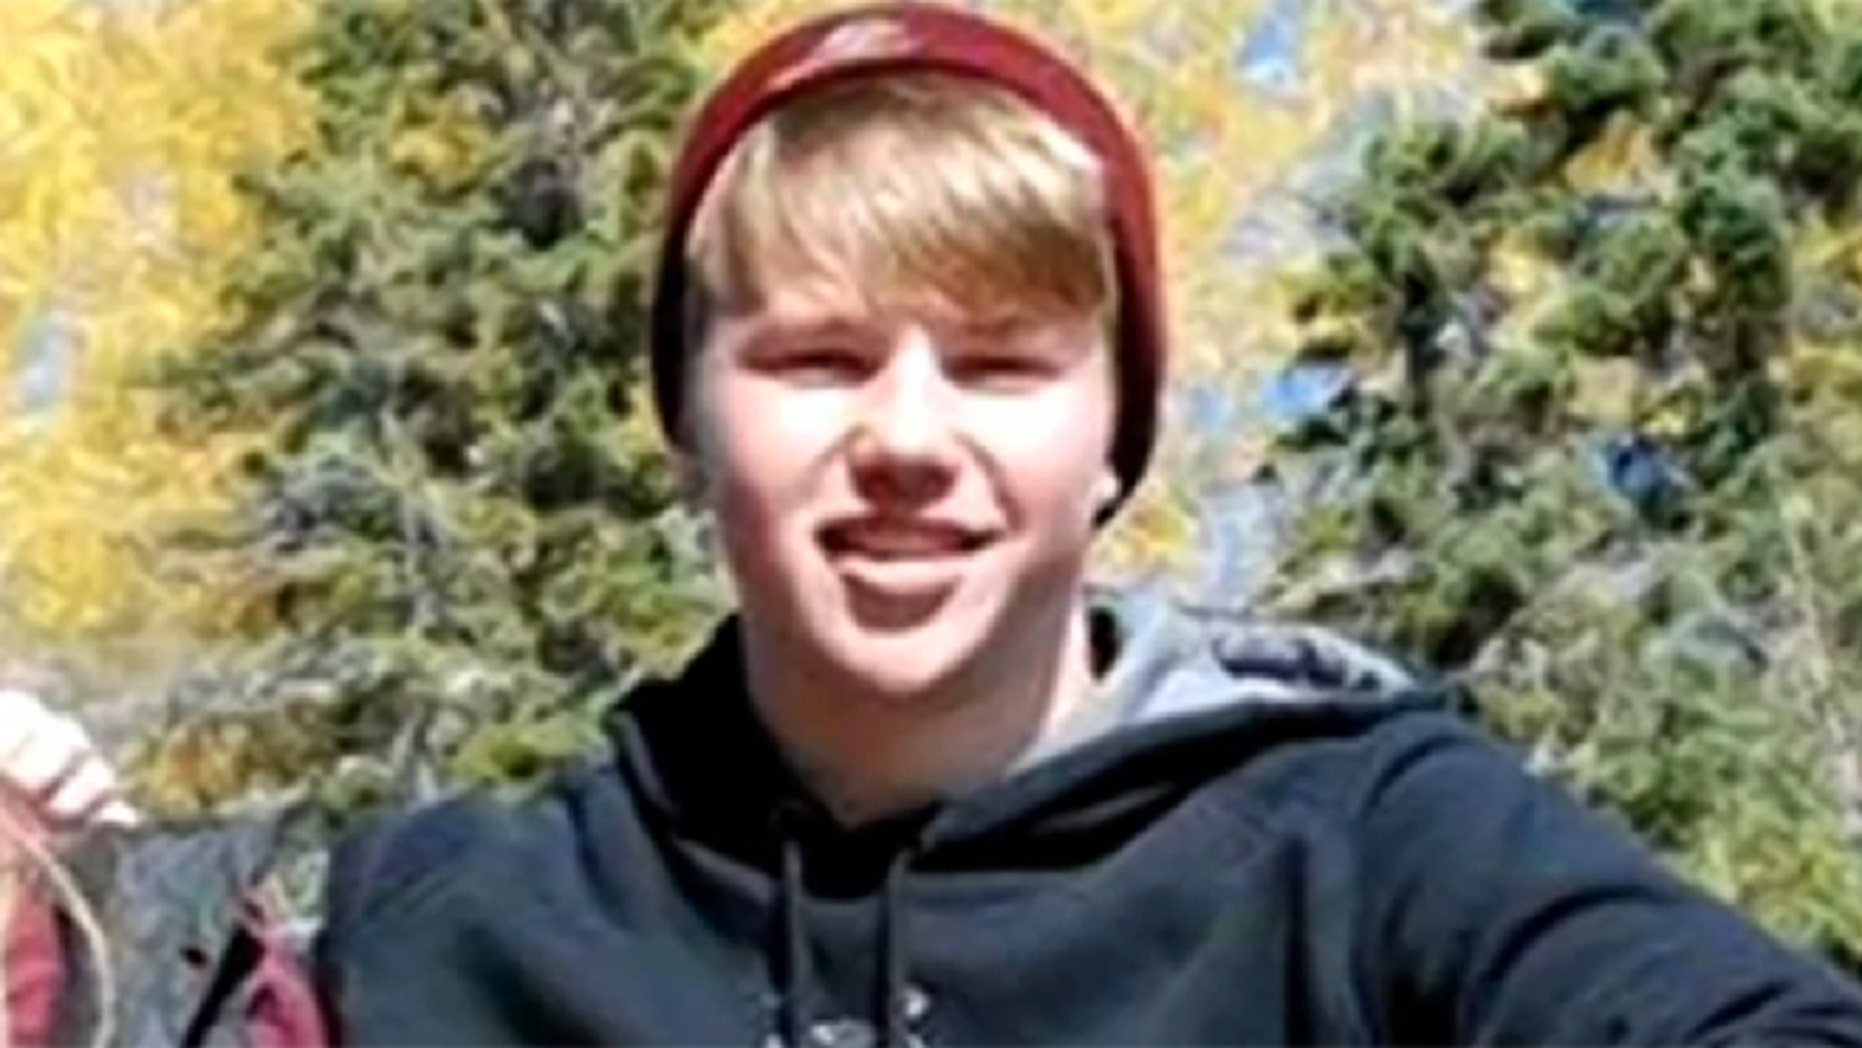 This undated photo shows 14-year-old Patrick Schoonover, who collapsed and died Friday following a hockey game.